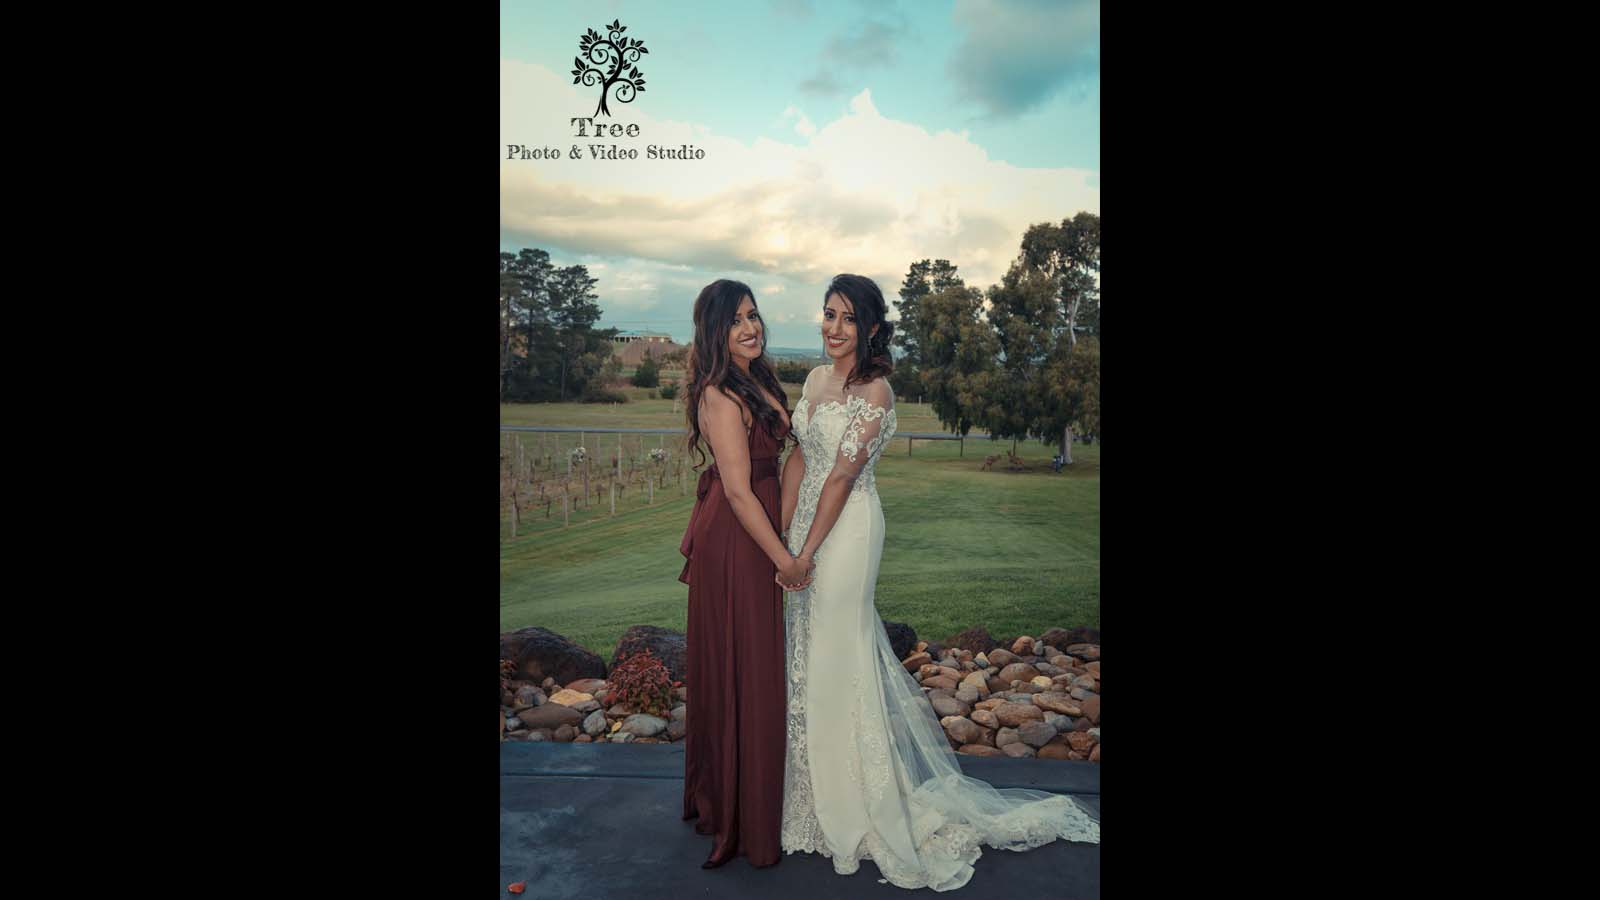 Yarra Vally Wedding Location